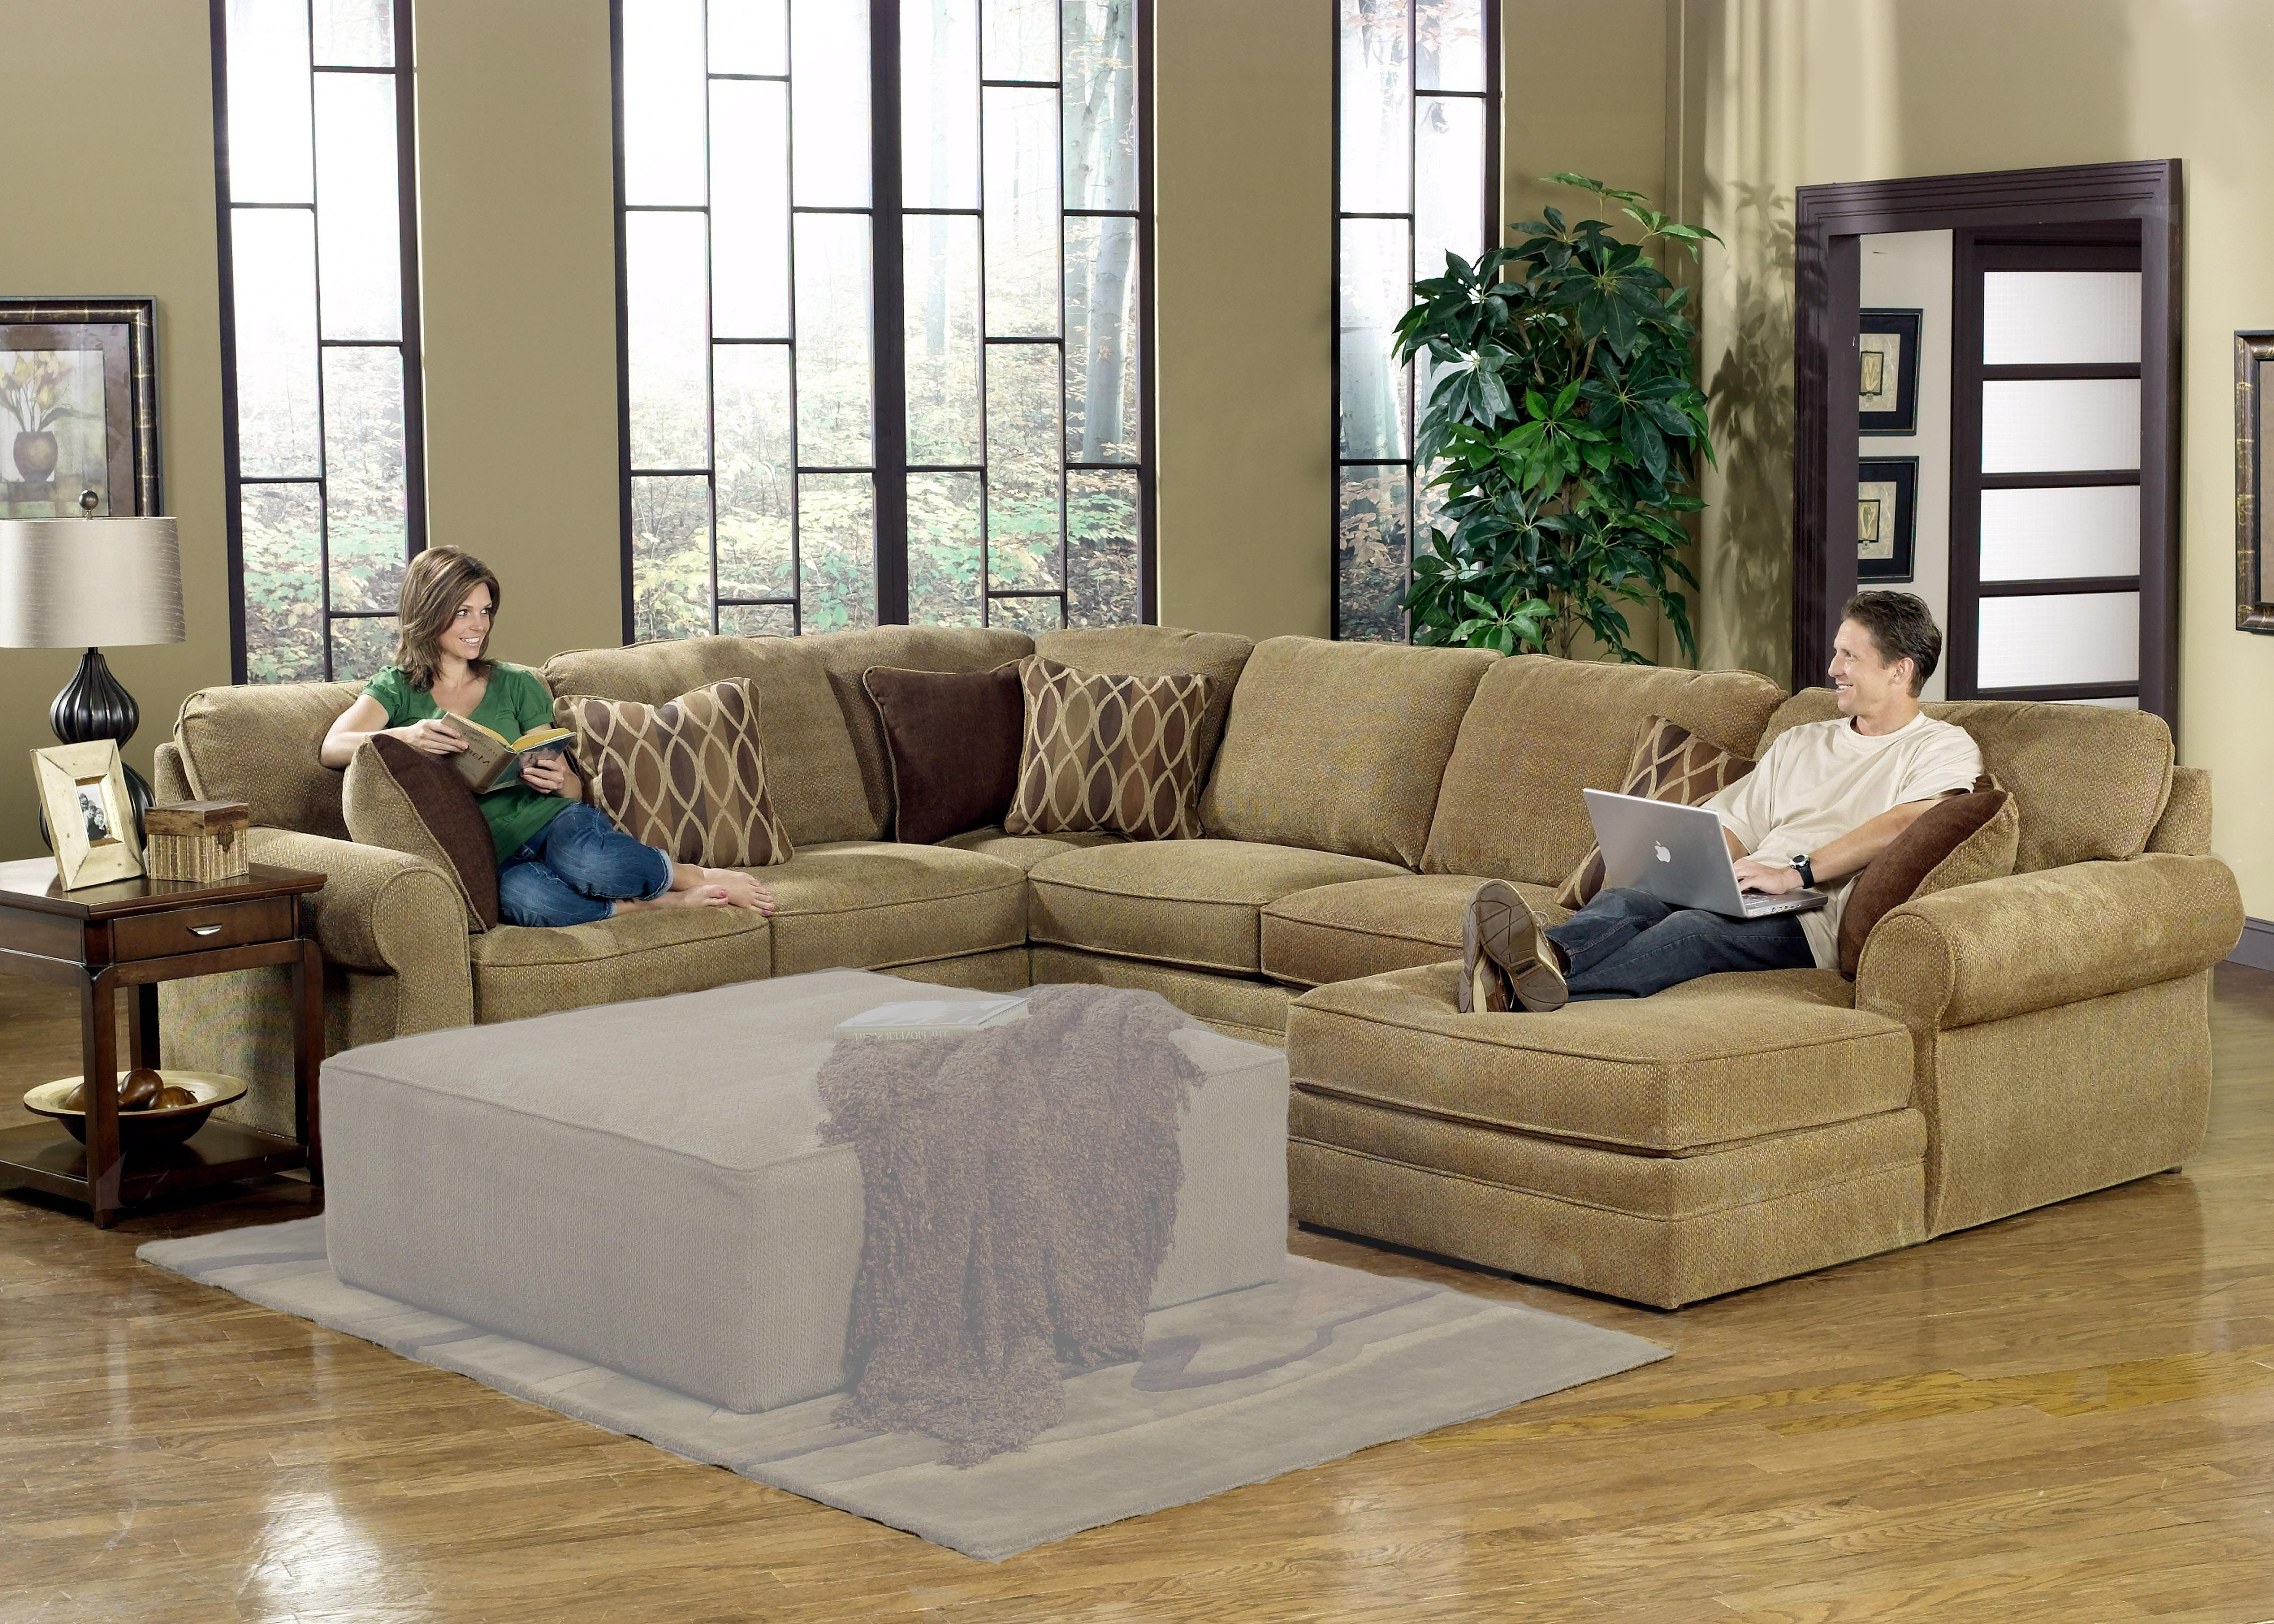 Sectional Sofa Design: Adorable Large U Shaped Sectional Sofa Best Inside Well Known Large Comfortable Sectional Sofas (View 15 of 20)